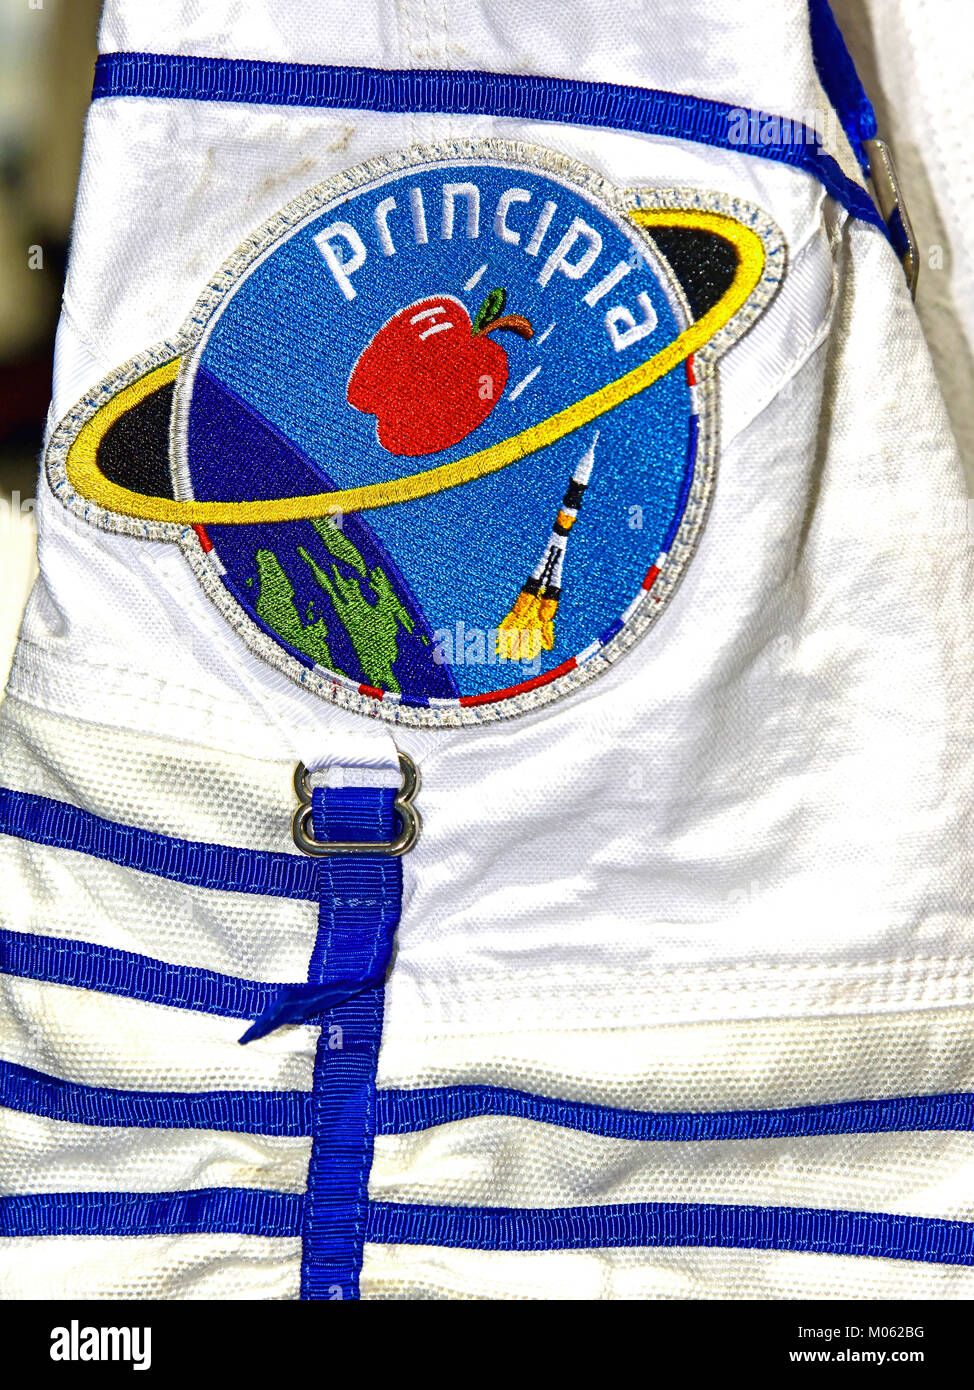 Tim Peakes Soyuz Russian spacesuit and Principia Isaac Newton badge Shildon Railway Museum - Stock Image